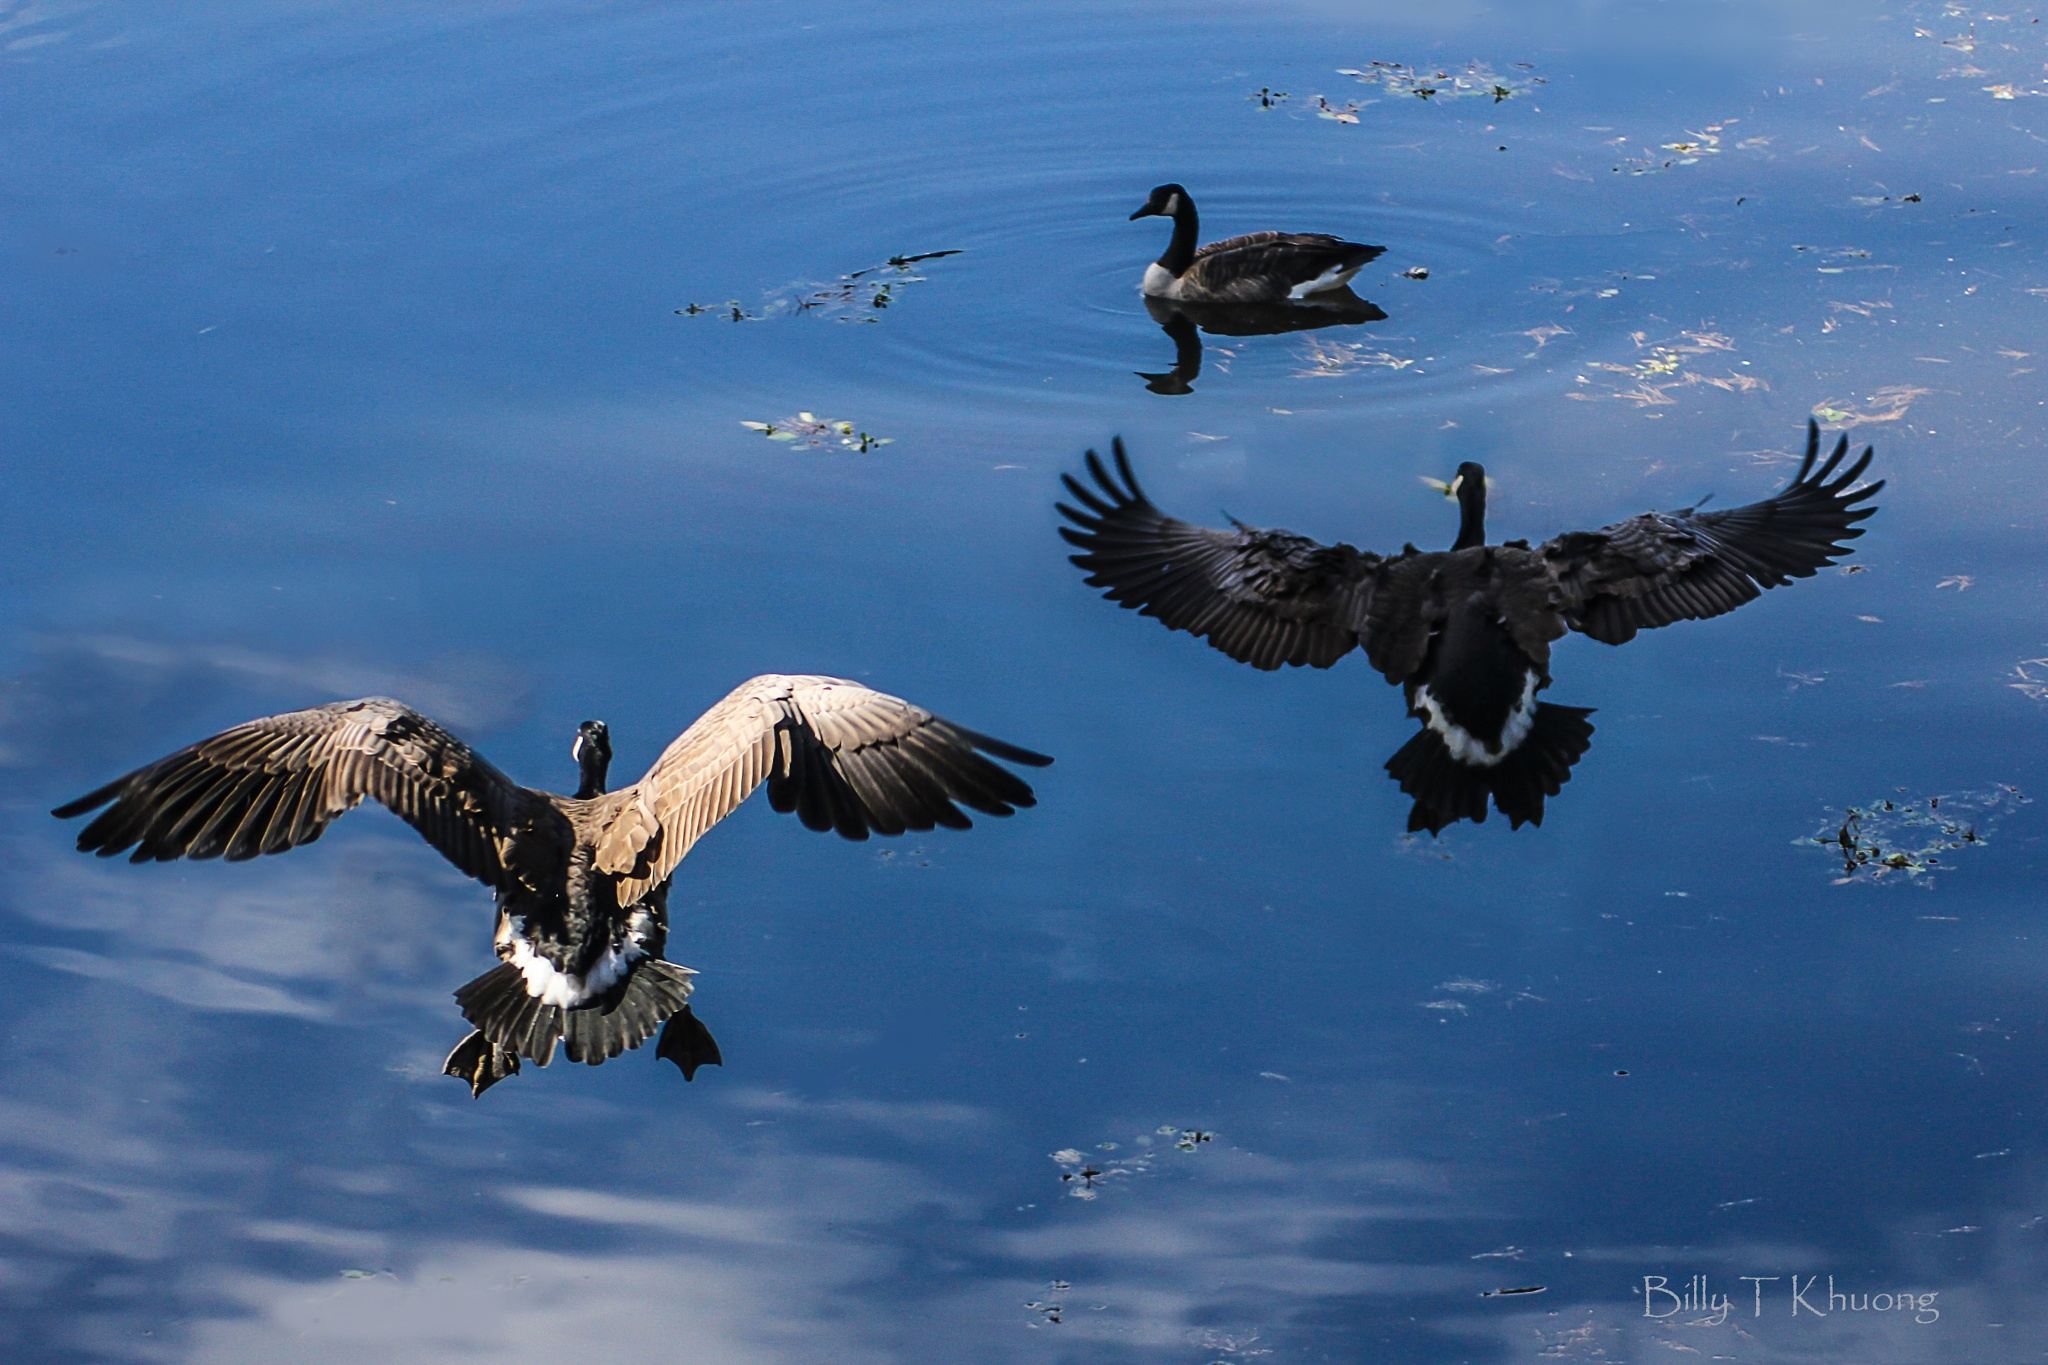 Fly away by bkhuong